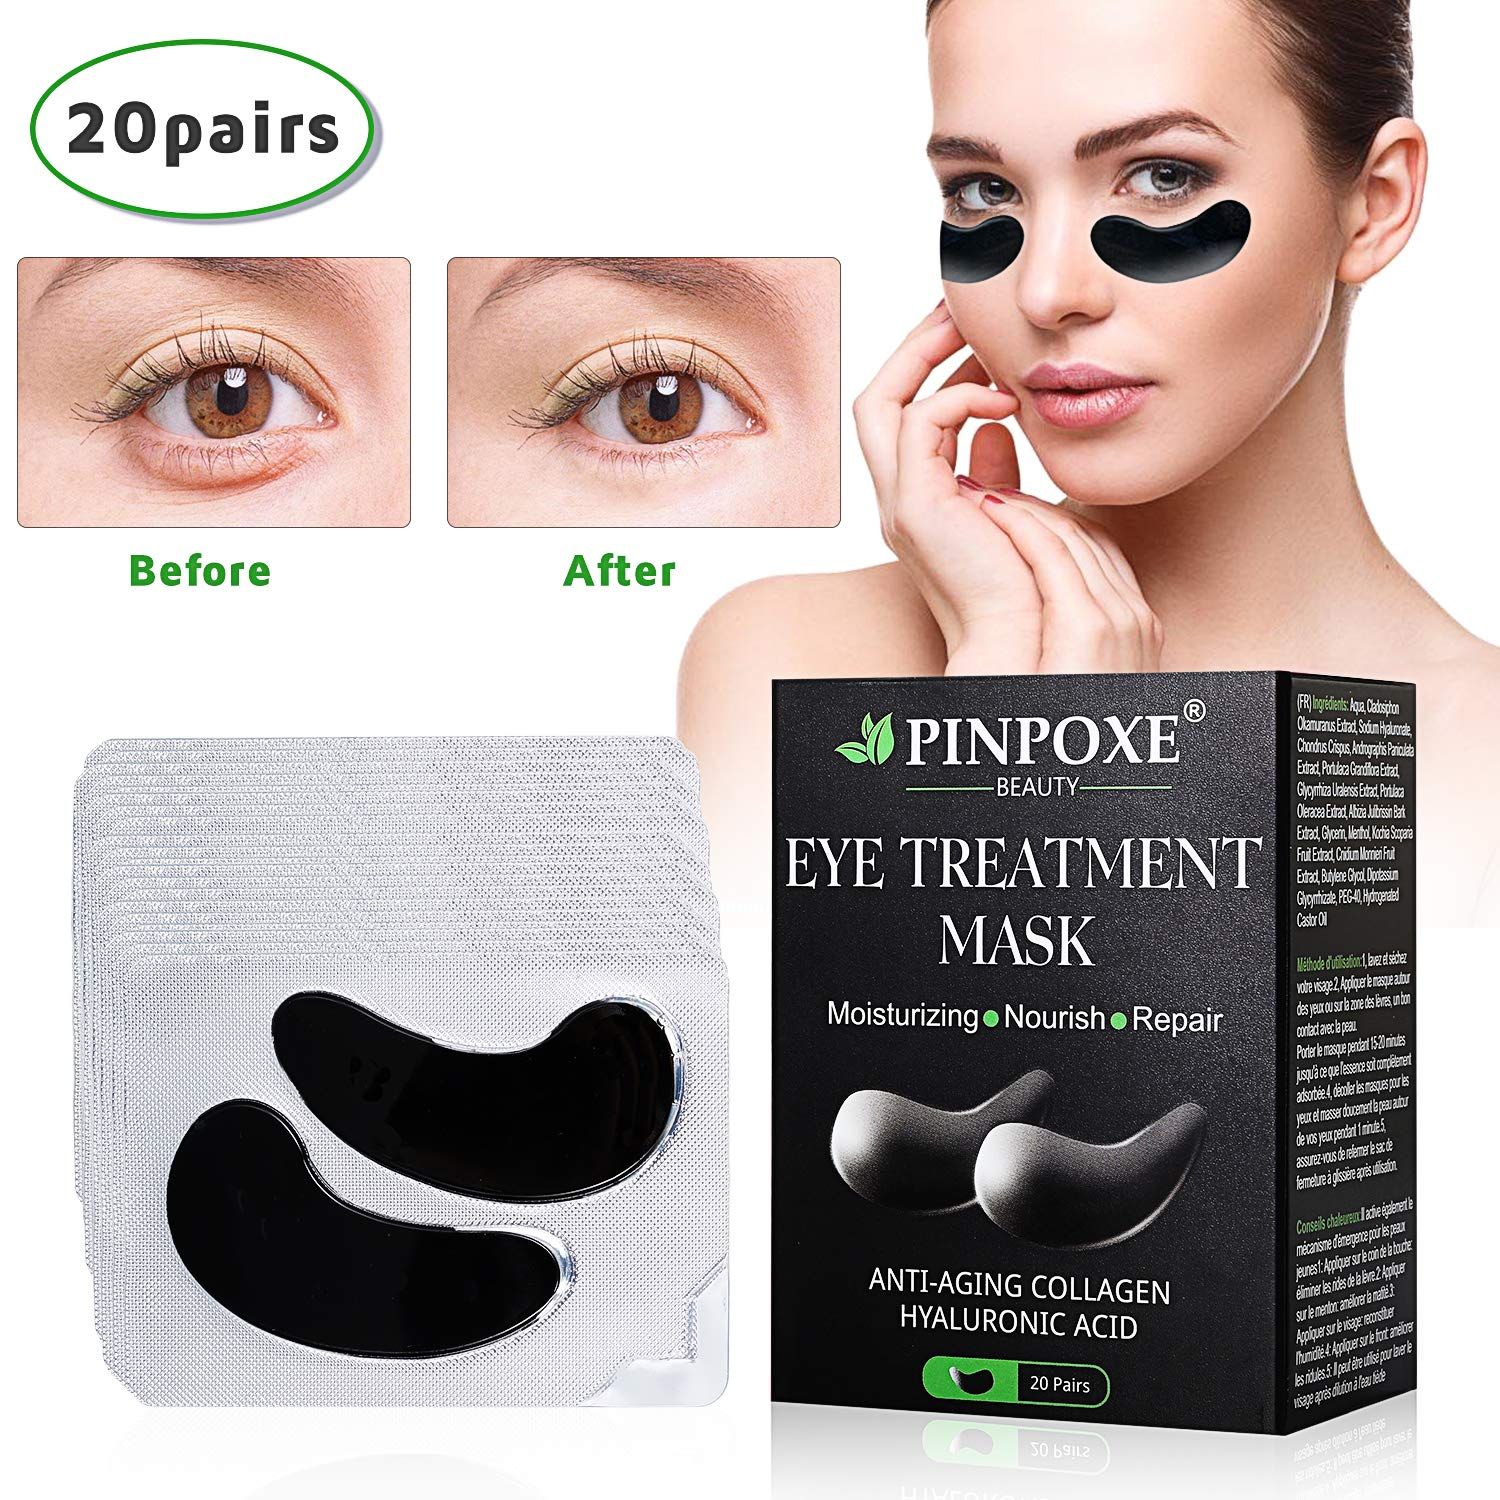 Under Eye Pads, Collagen Eye Mask, Eye Treatment Mask, Puffy Eyes, Eye Patches, Natural Eye Patches With Anti-aging and Wrinkle Care Properties/Help Reduce Dark Circles and Puffiness (20 Pairs) by BUOCEANS Official